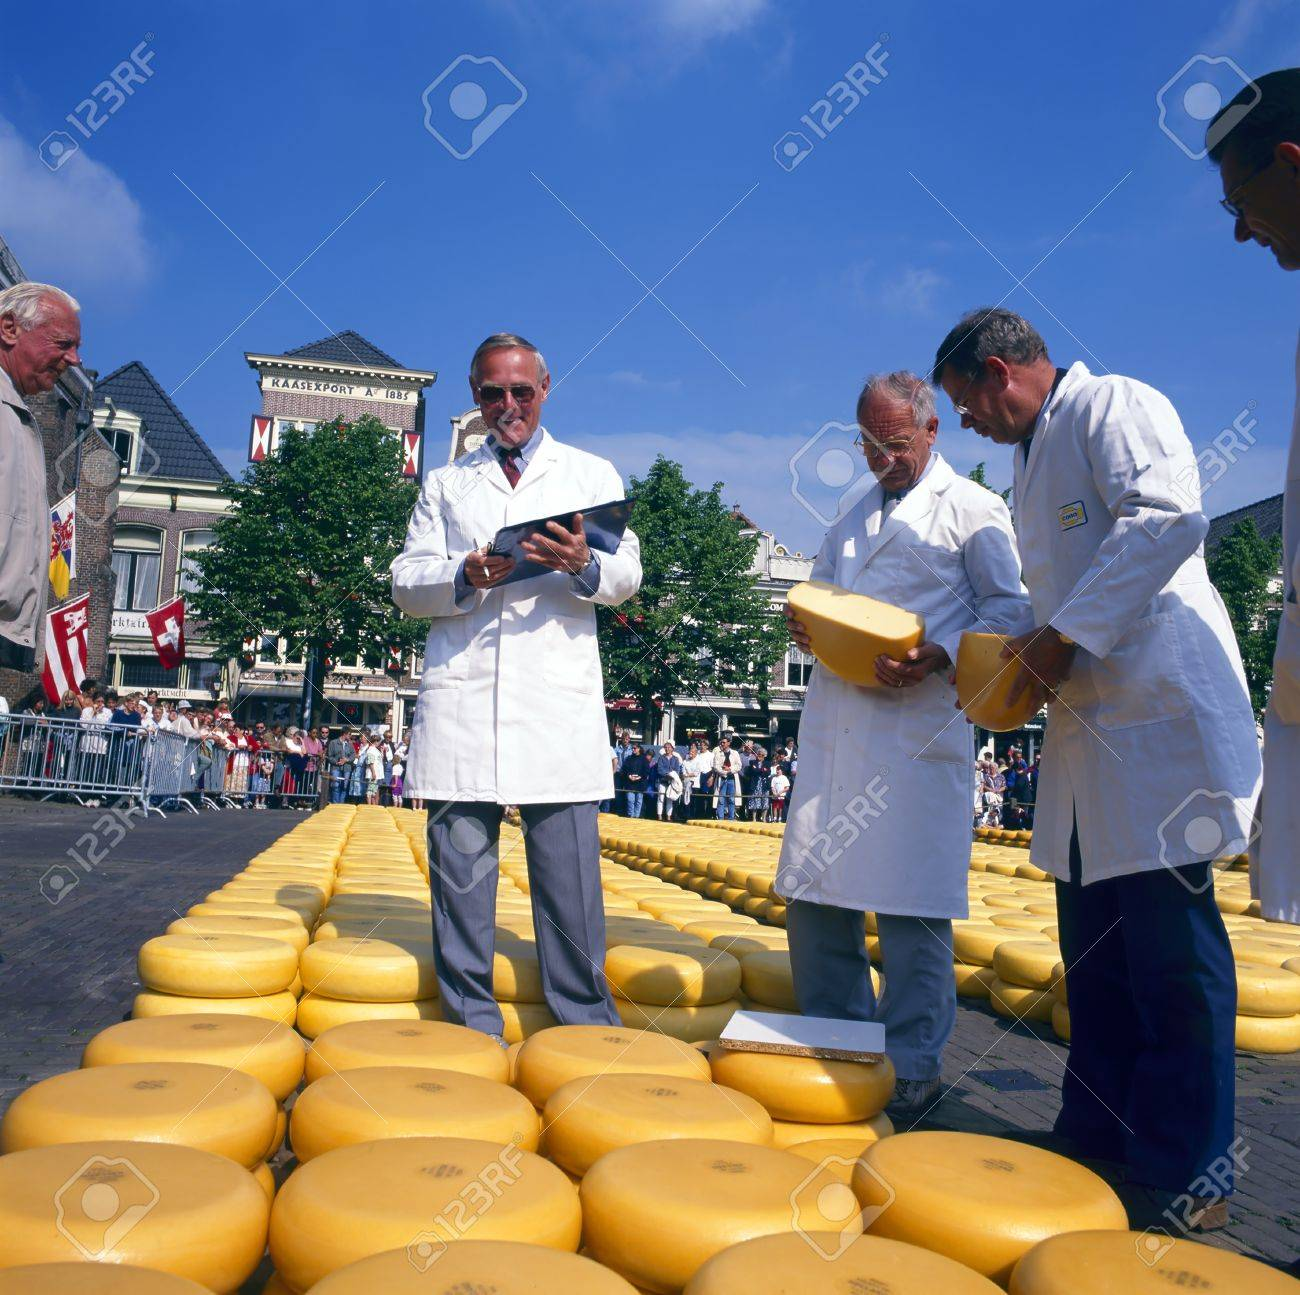 ALKMAAR, THE NETHERLANDS - AUGUST 03  Men check the cheese quality at the cheese market on August 03, 2012 in Alkmaar, Netherlands  Every Friday morning there is a typical cheese market at Alkmaar Stock Photo - 19235270